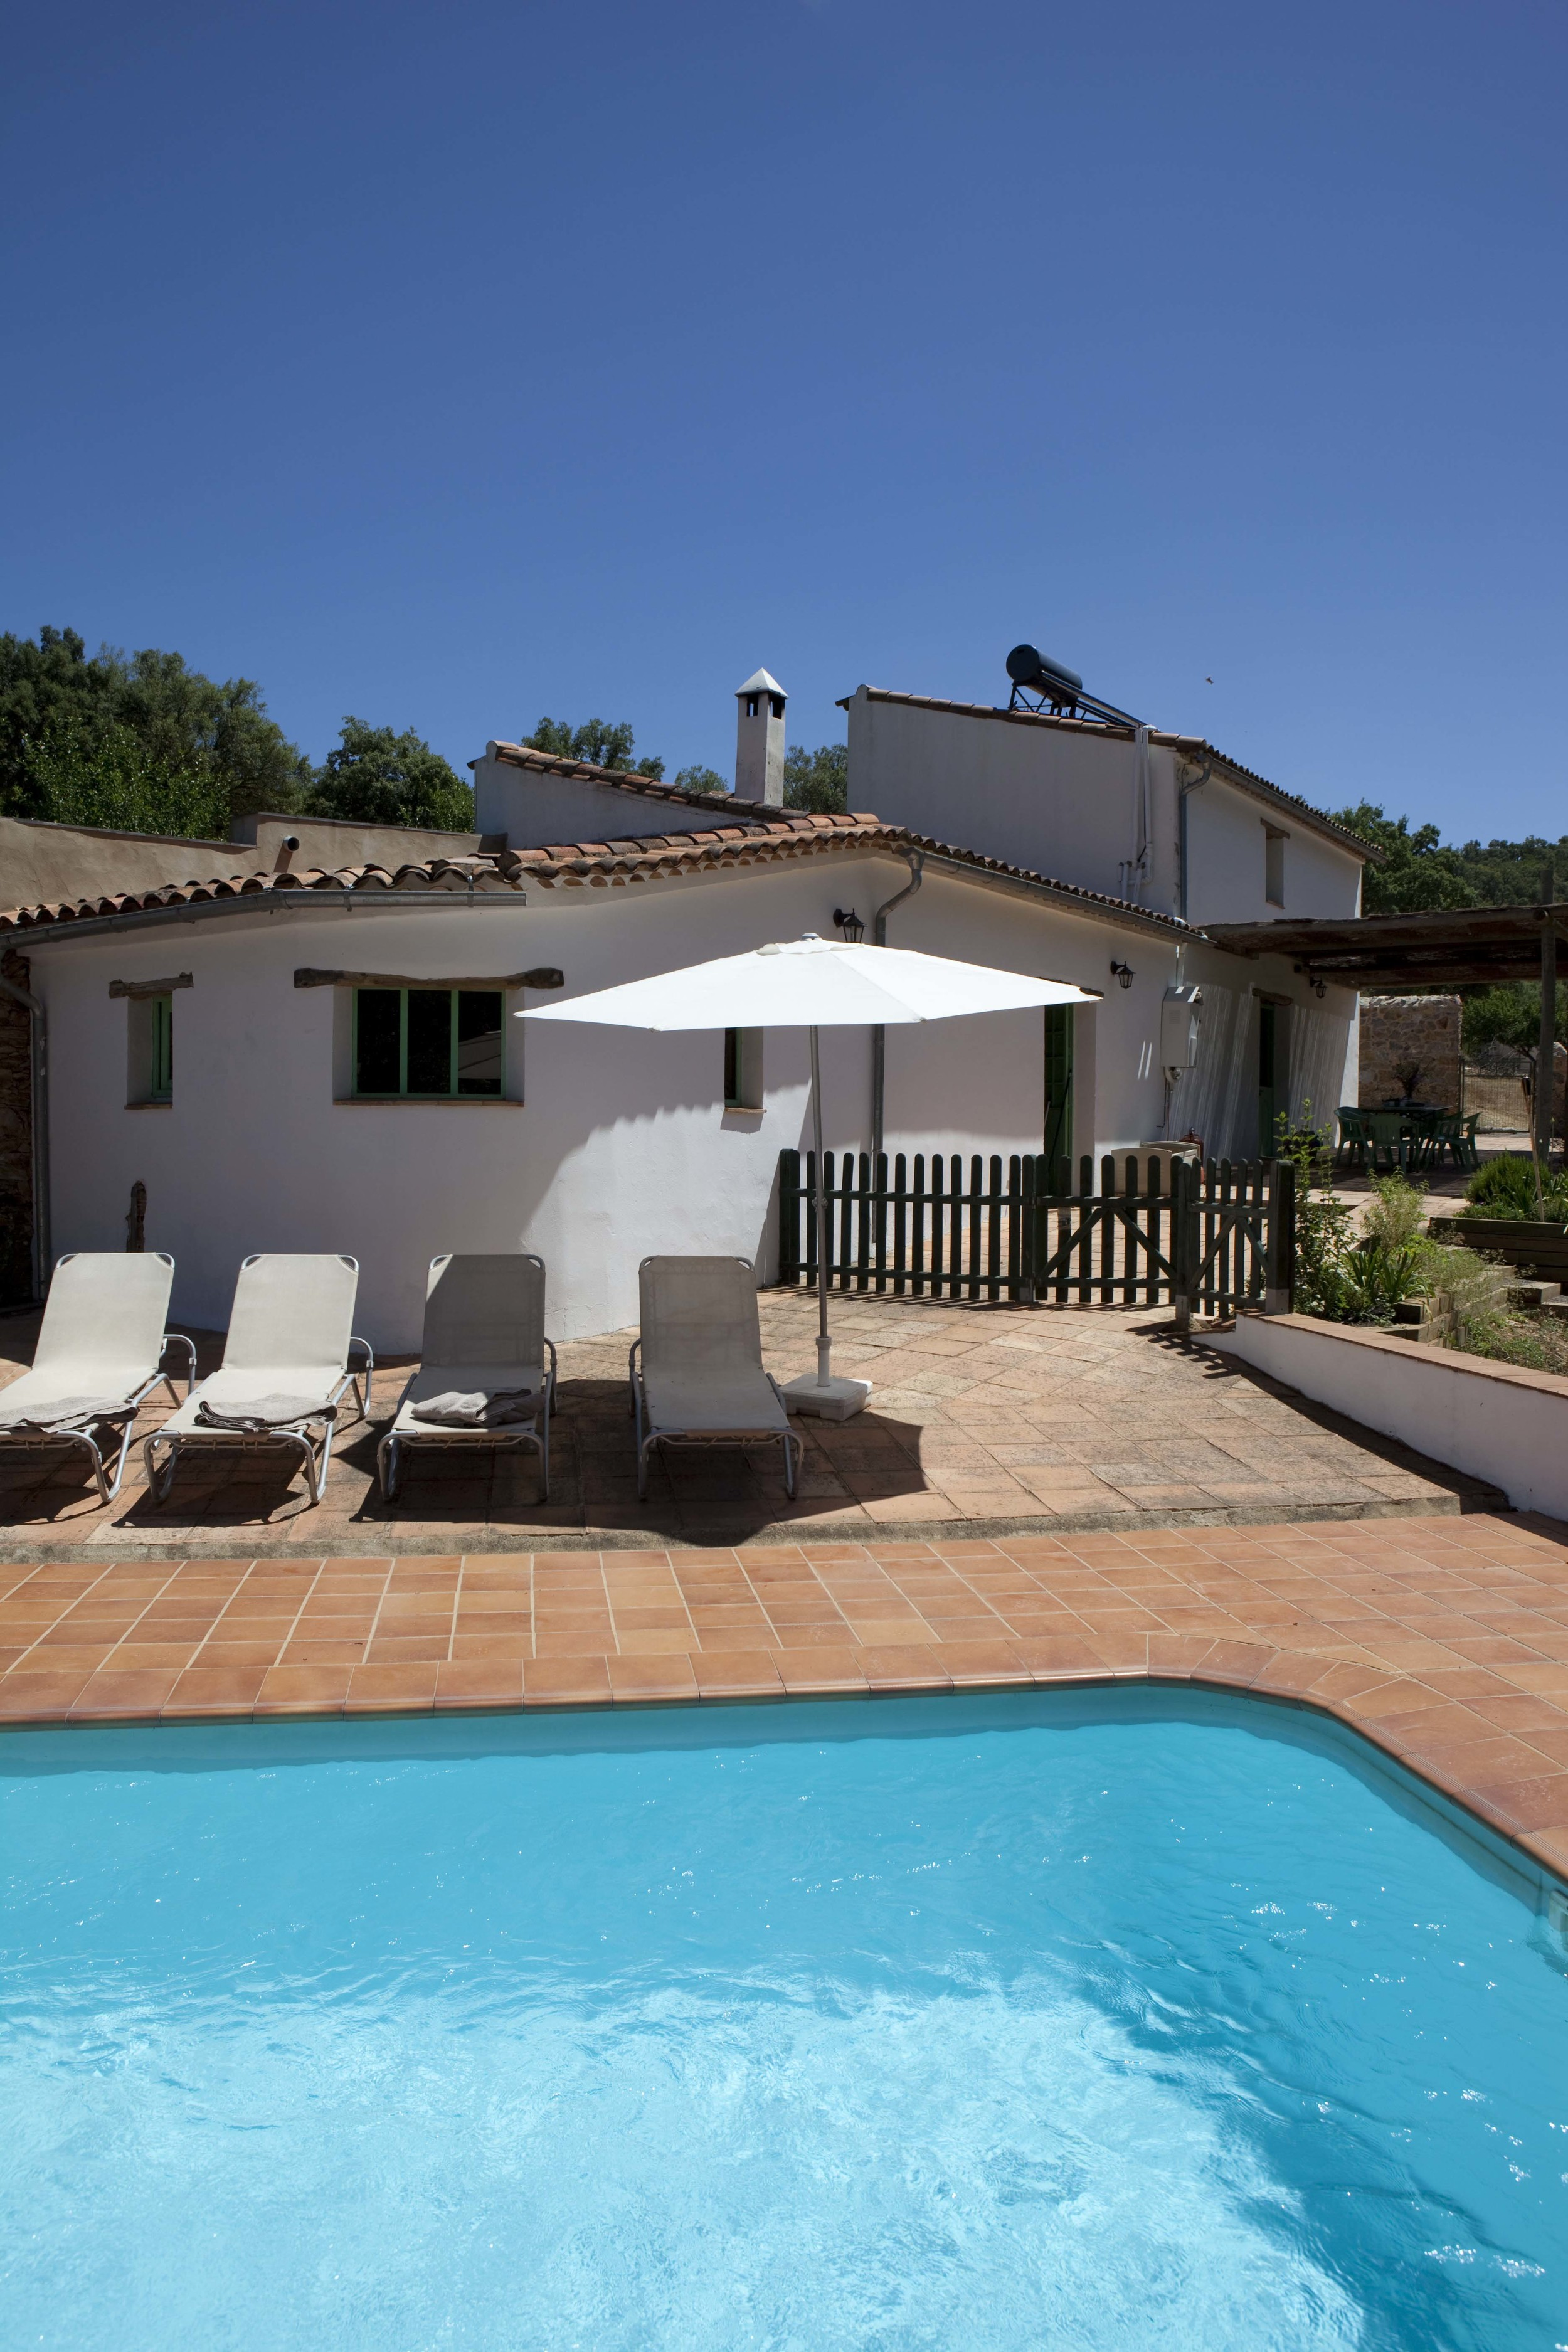 The private pool, Casita de Luis self-catering cottage